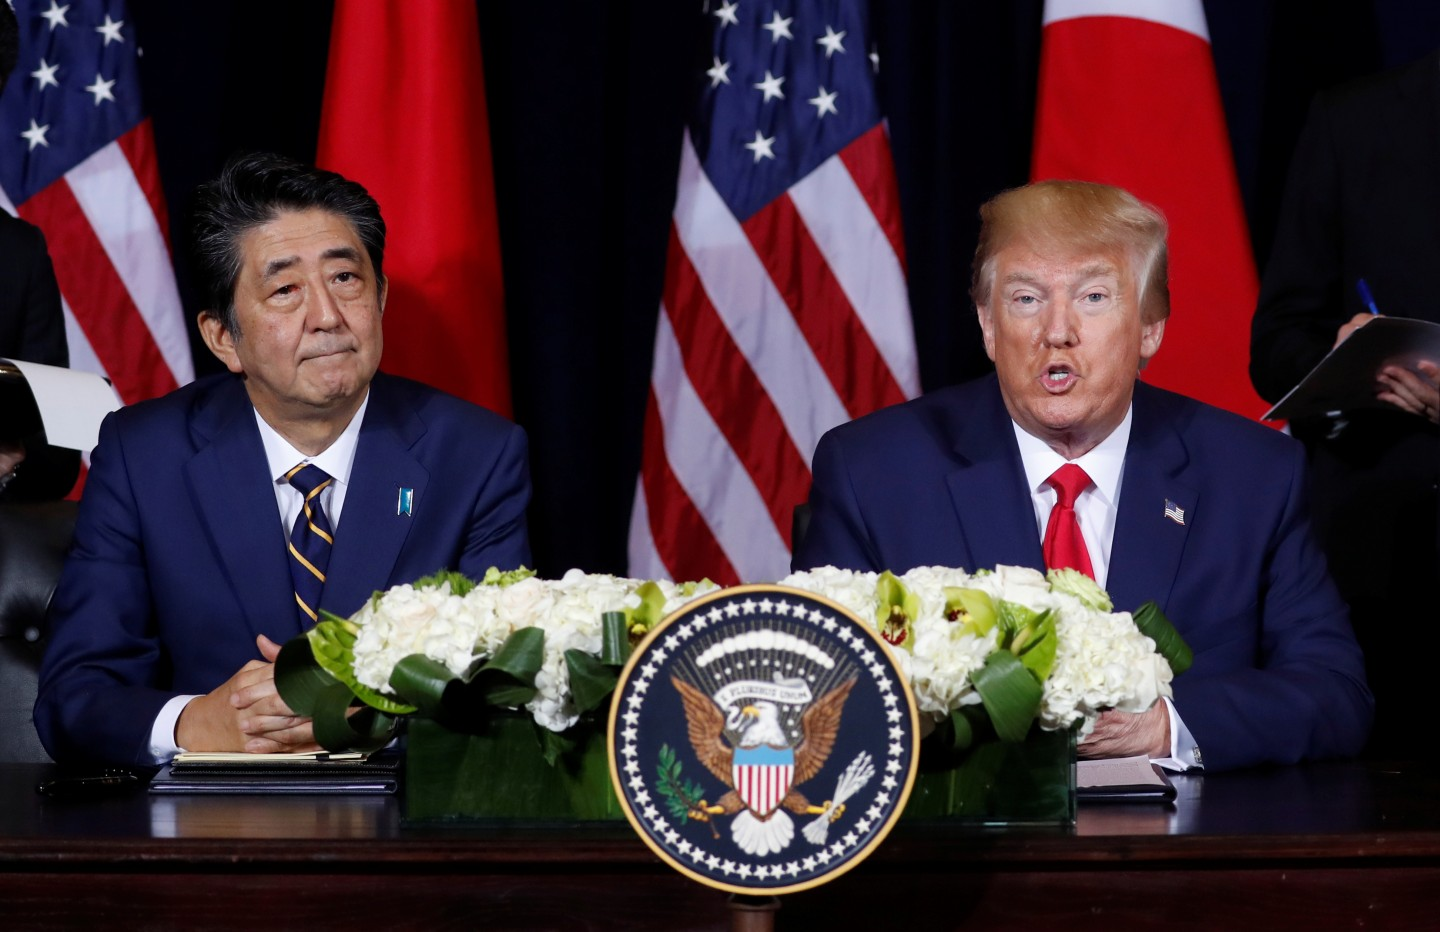 U.S. President Donald Trump speaks to reporters as he holds a bilateral meeting with Japan's Prime Minister Shinzo Abe on the sidelines of the 74th session of the United Nations General Assembly (UNGA) in New York City, New York, U.S., September 25, 2019. REUTERS/Jonathan Ernst